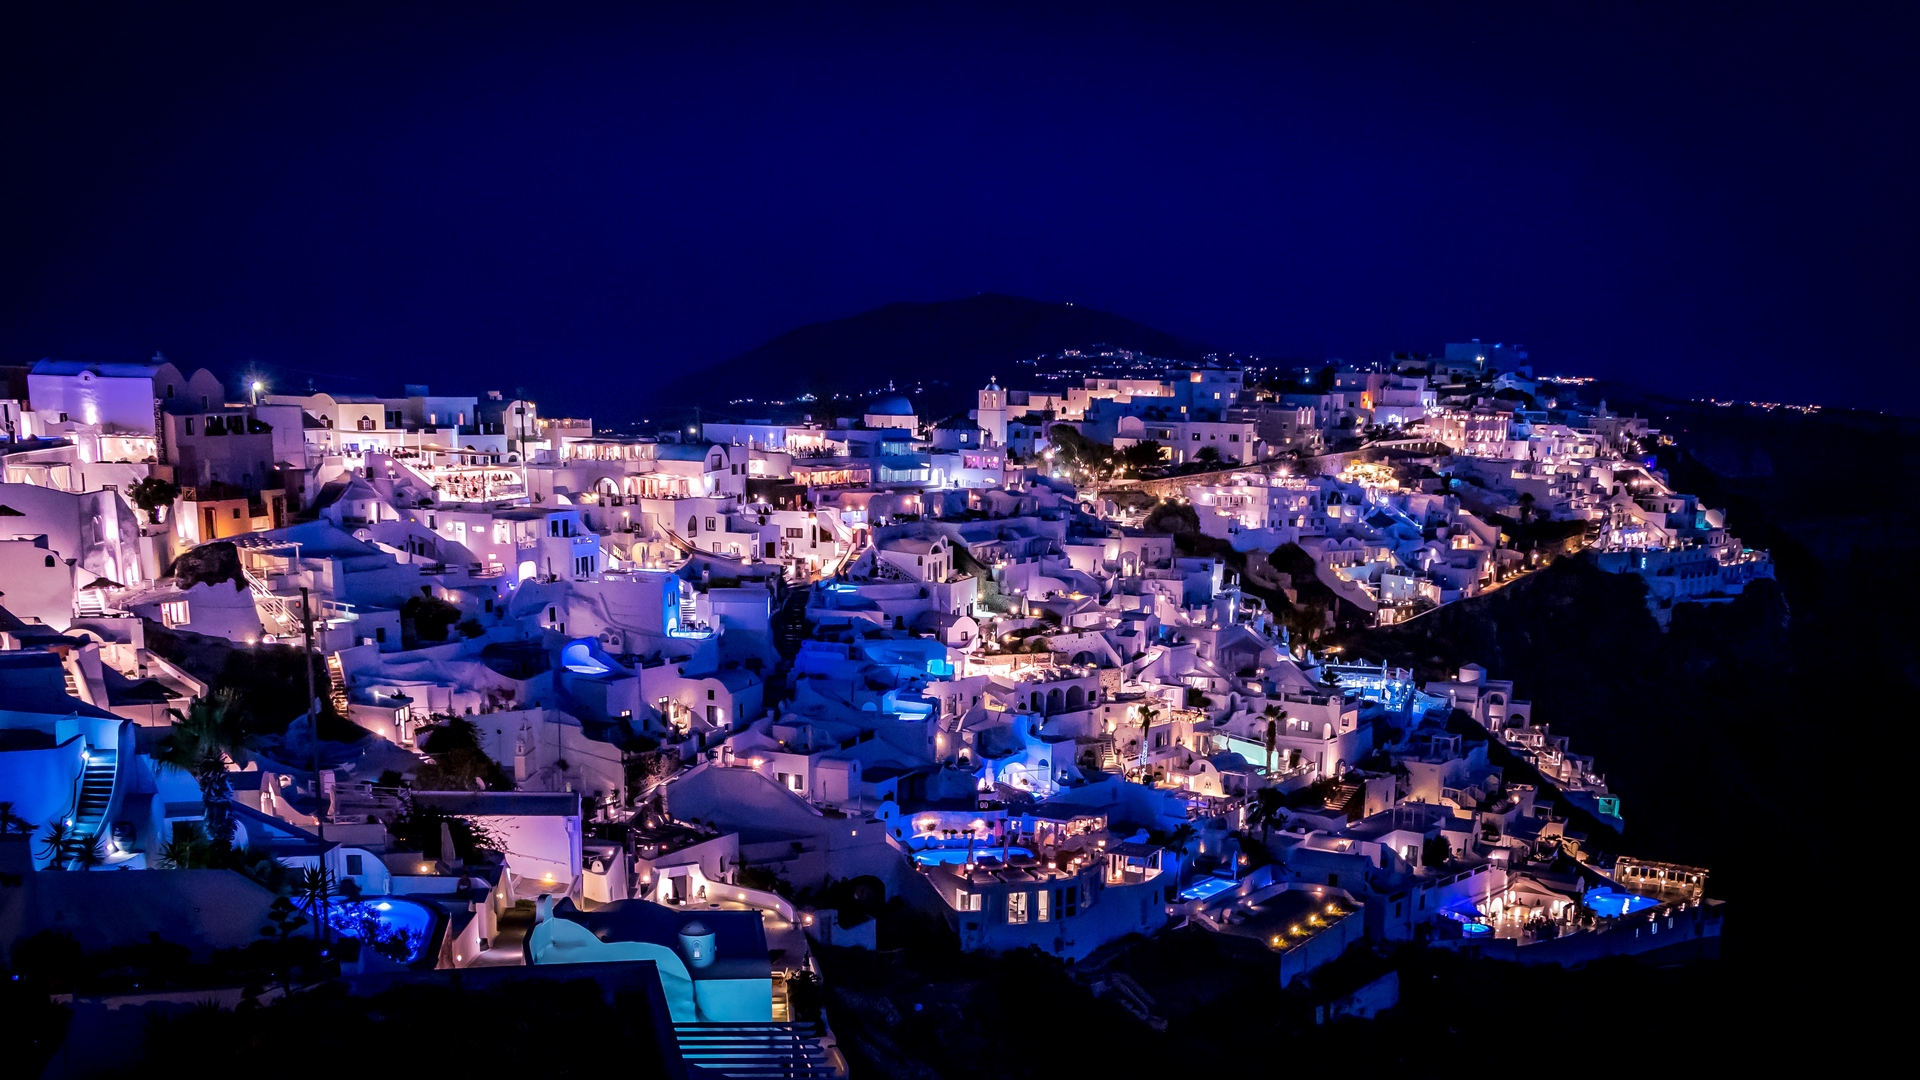 Download wallpaper 1920x1080 santorini greece night city 1920x1080